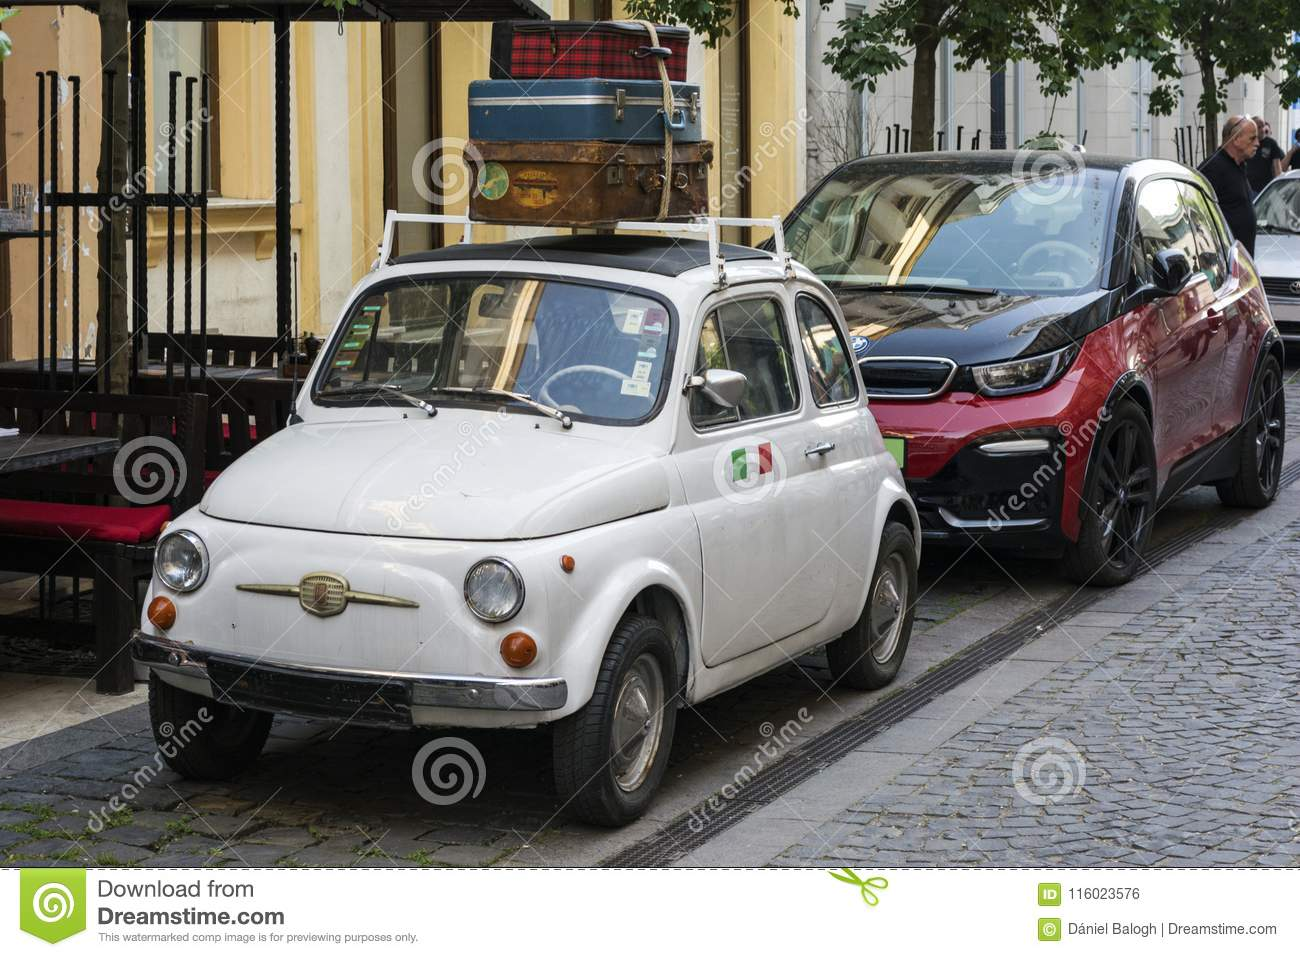 BUDAPEST, HUNGARY - MAY 5, 2018: Veteran fiat 500 meets modern bmw i3. Technology and tradition. The past and the future.